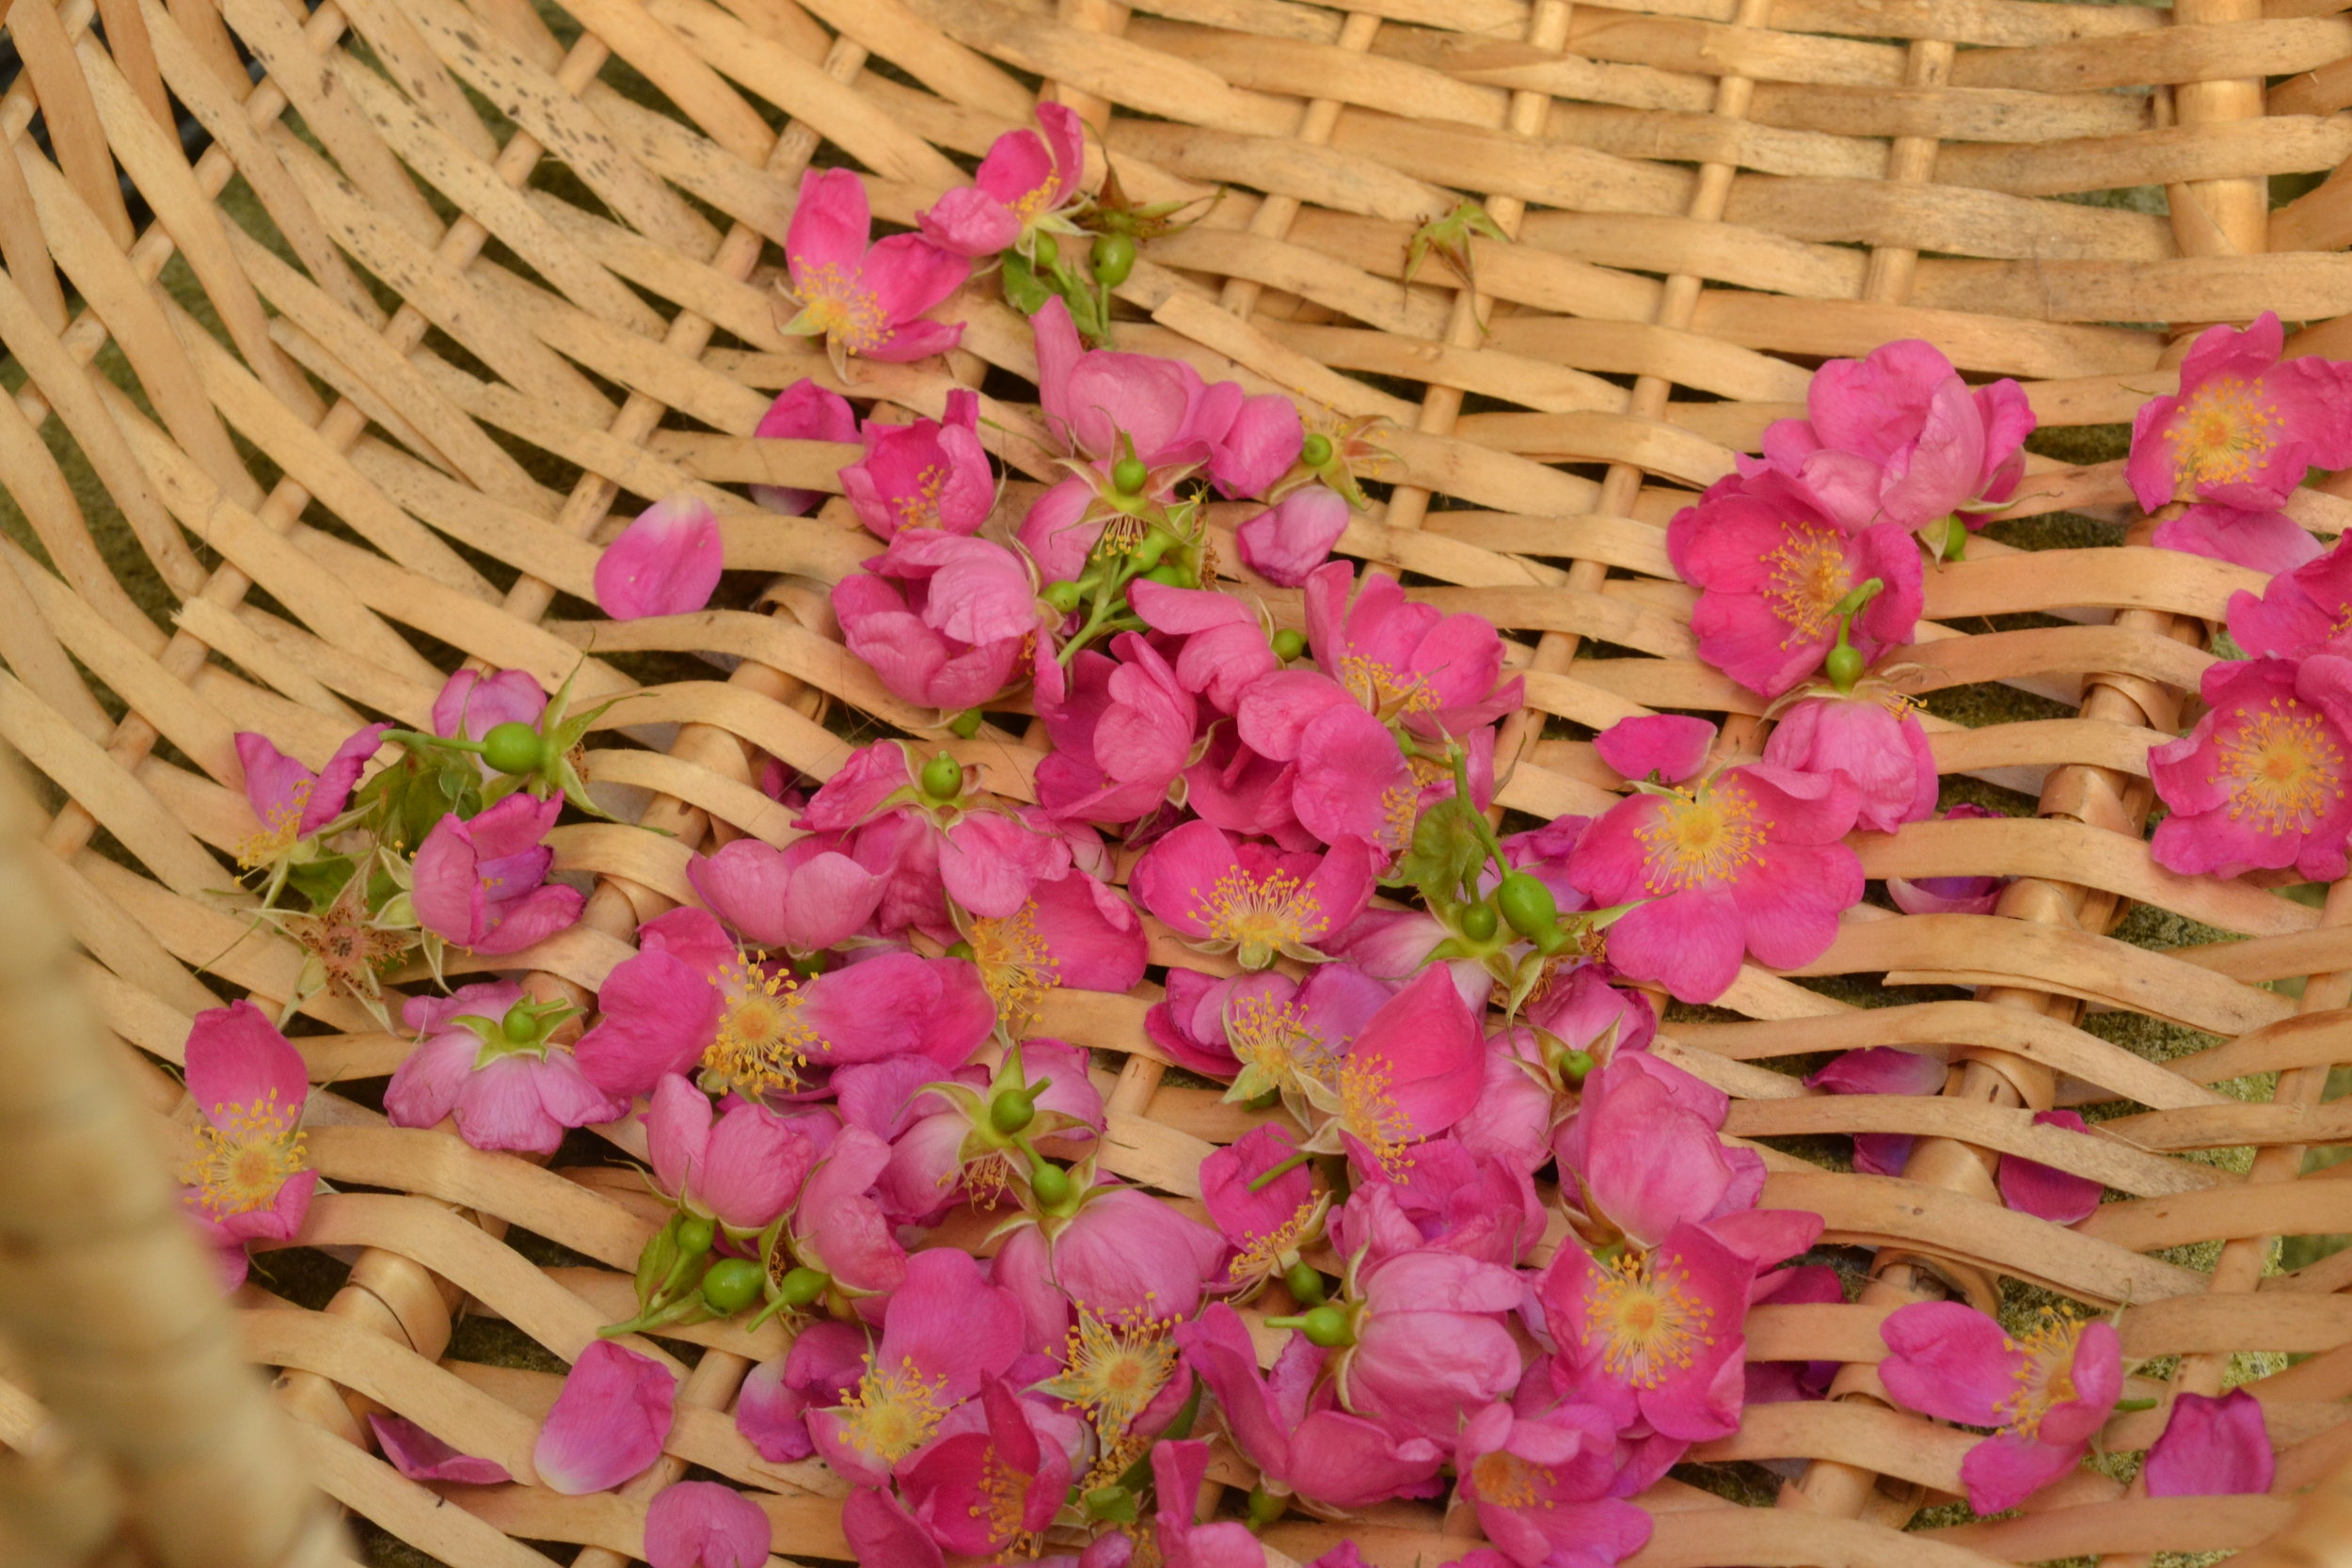 Consider the different parts of the harvested material, the petals of these wild rose flowers will dry much faster than the flower heads, so when you are checking that it is thoroughly dry, snap at the thickest part.